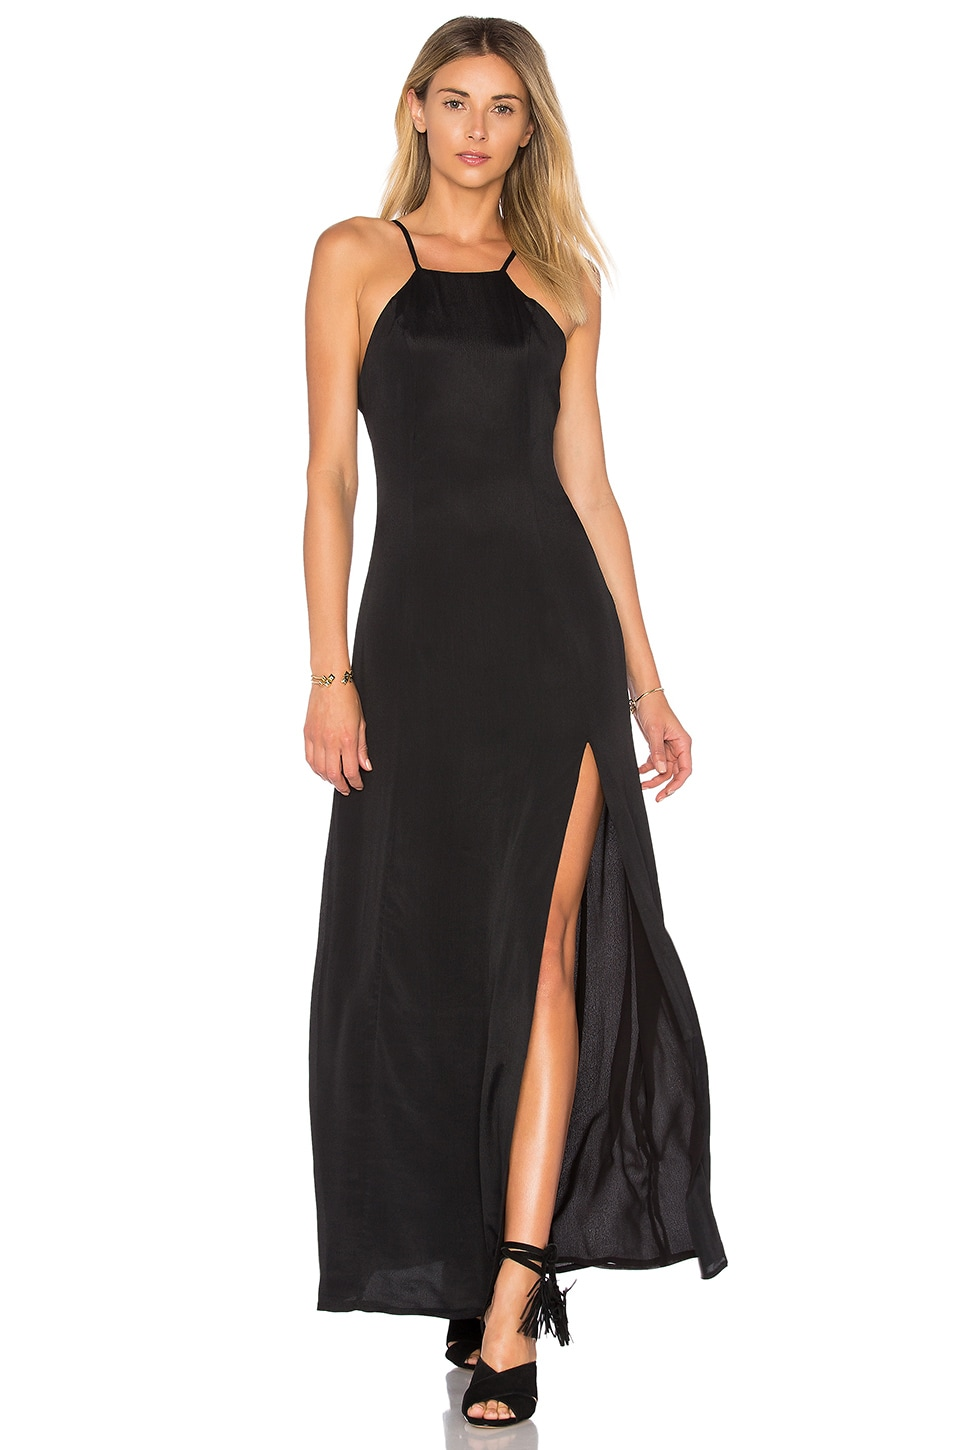 Privacy Please Orrin Dress in Black